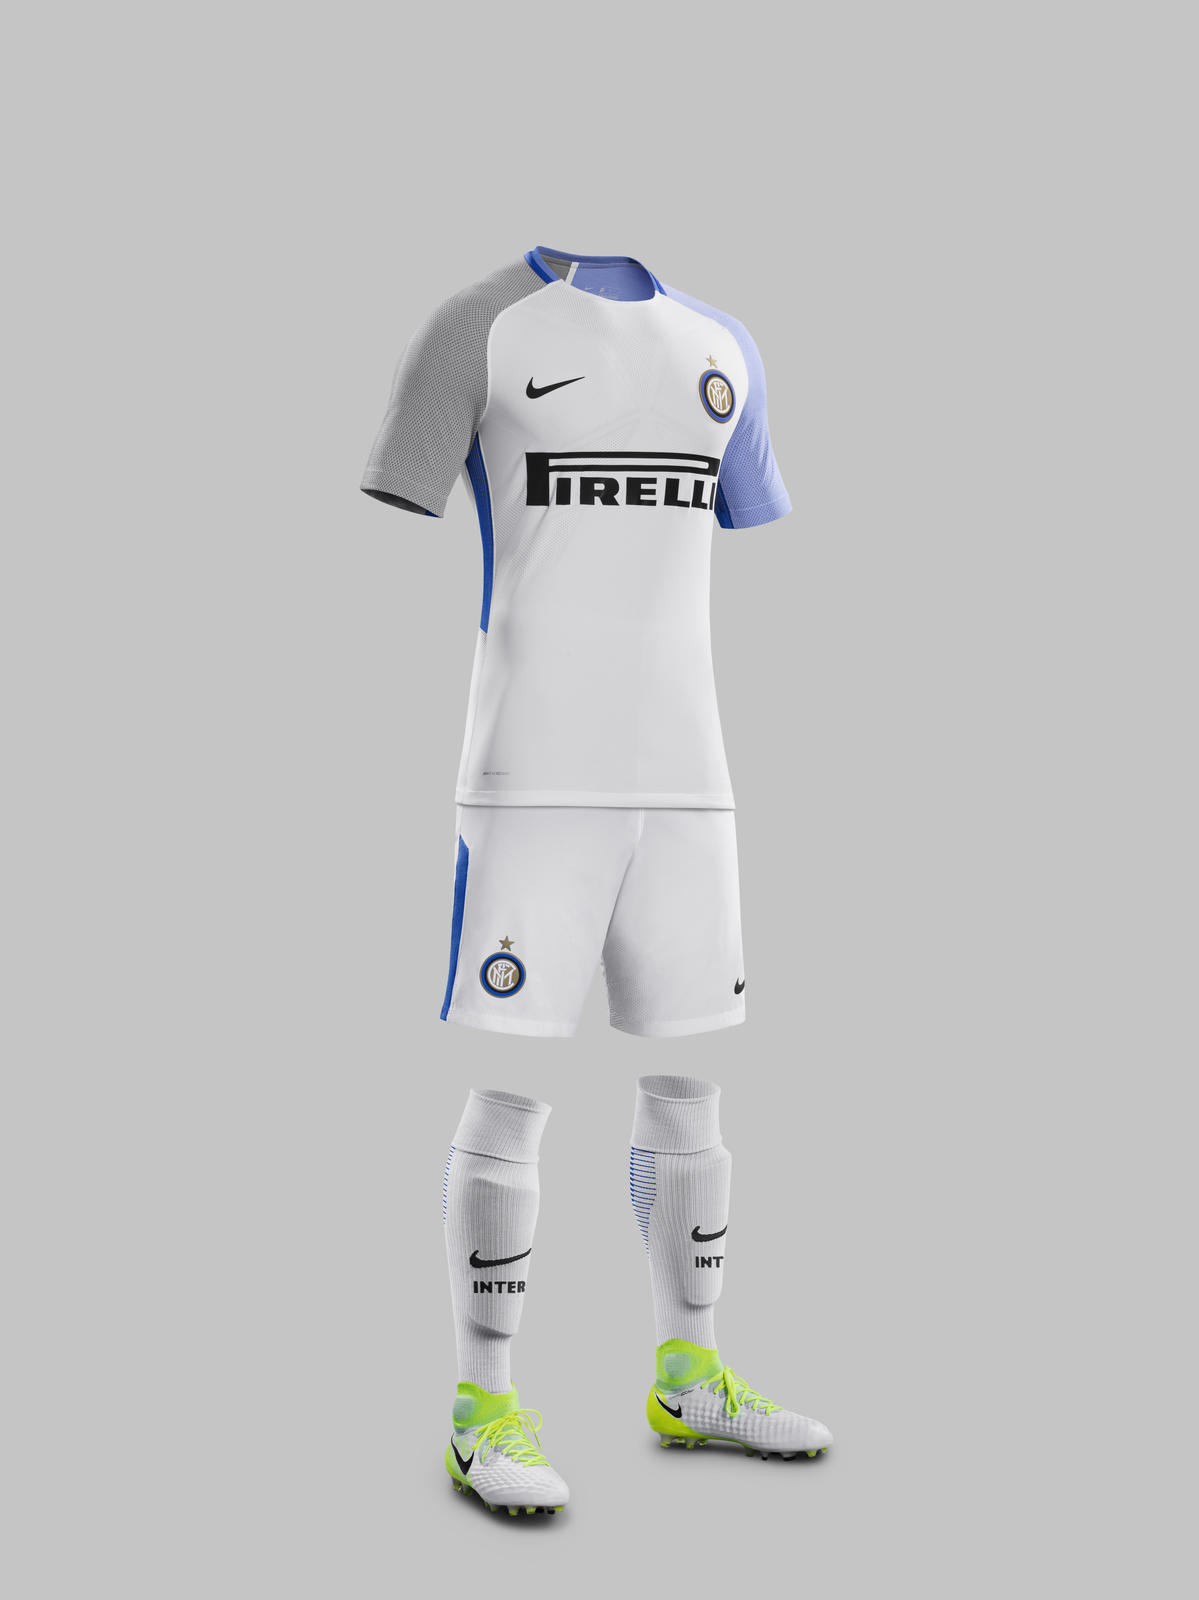 finest selection 6f5e5 973f4 FC Internazionale Milano Away Kit 2017-18 - Nike News